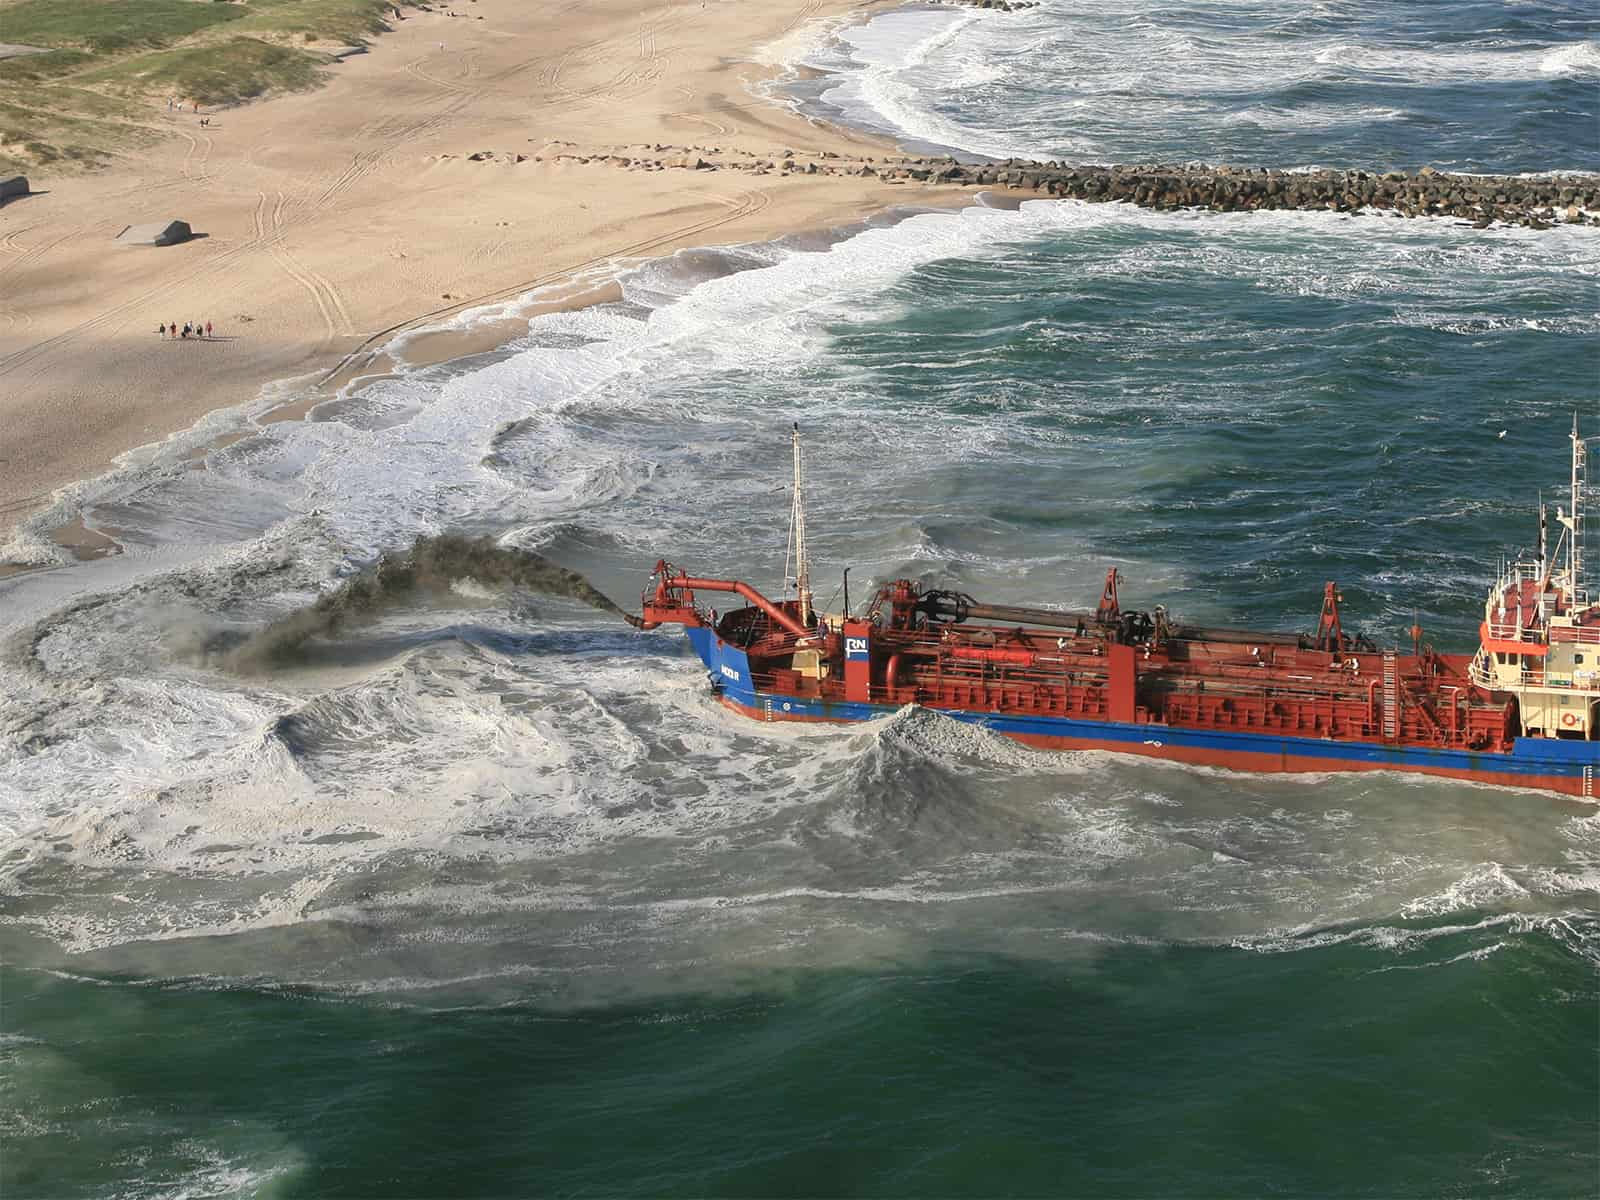 Beach nourishment – trailing suction hopper dredger rainbowing